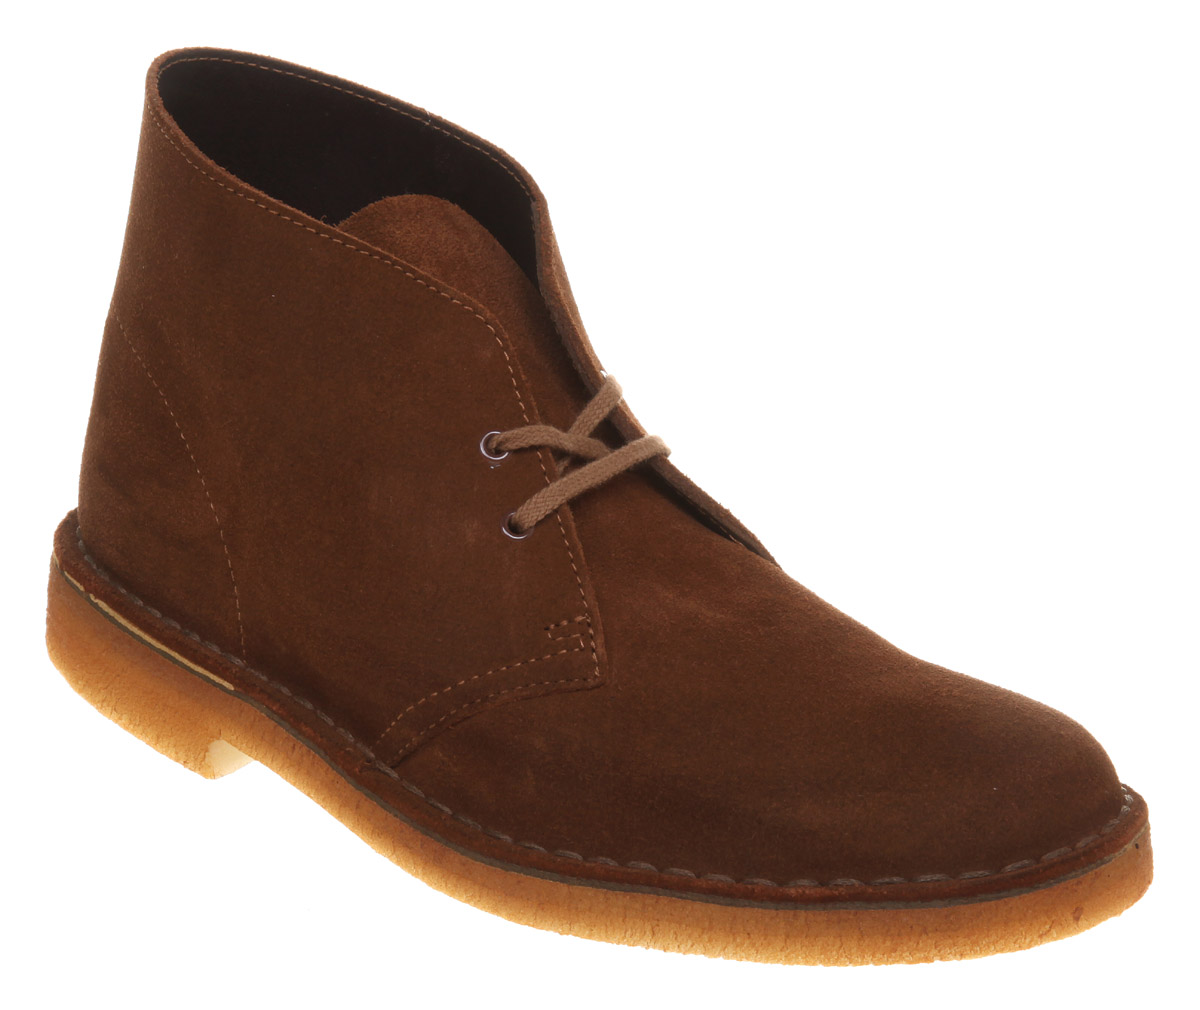 mens clarks originals desert boots cola suede boots ebay. Black Bedroom Furniture Sets. Home Design Ideas